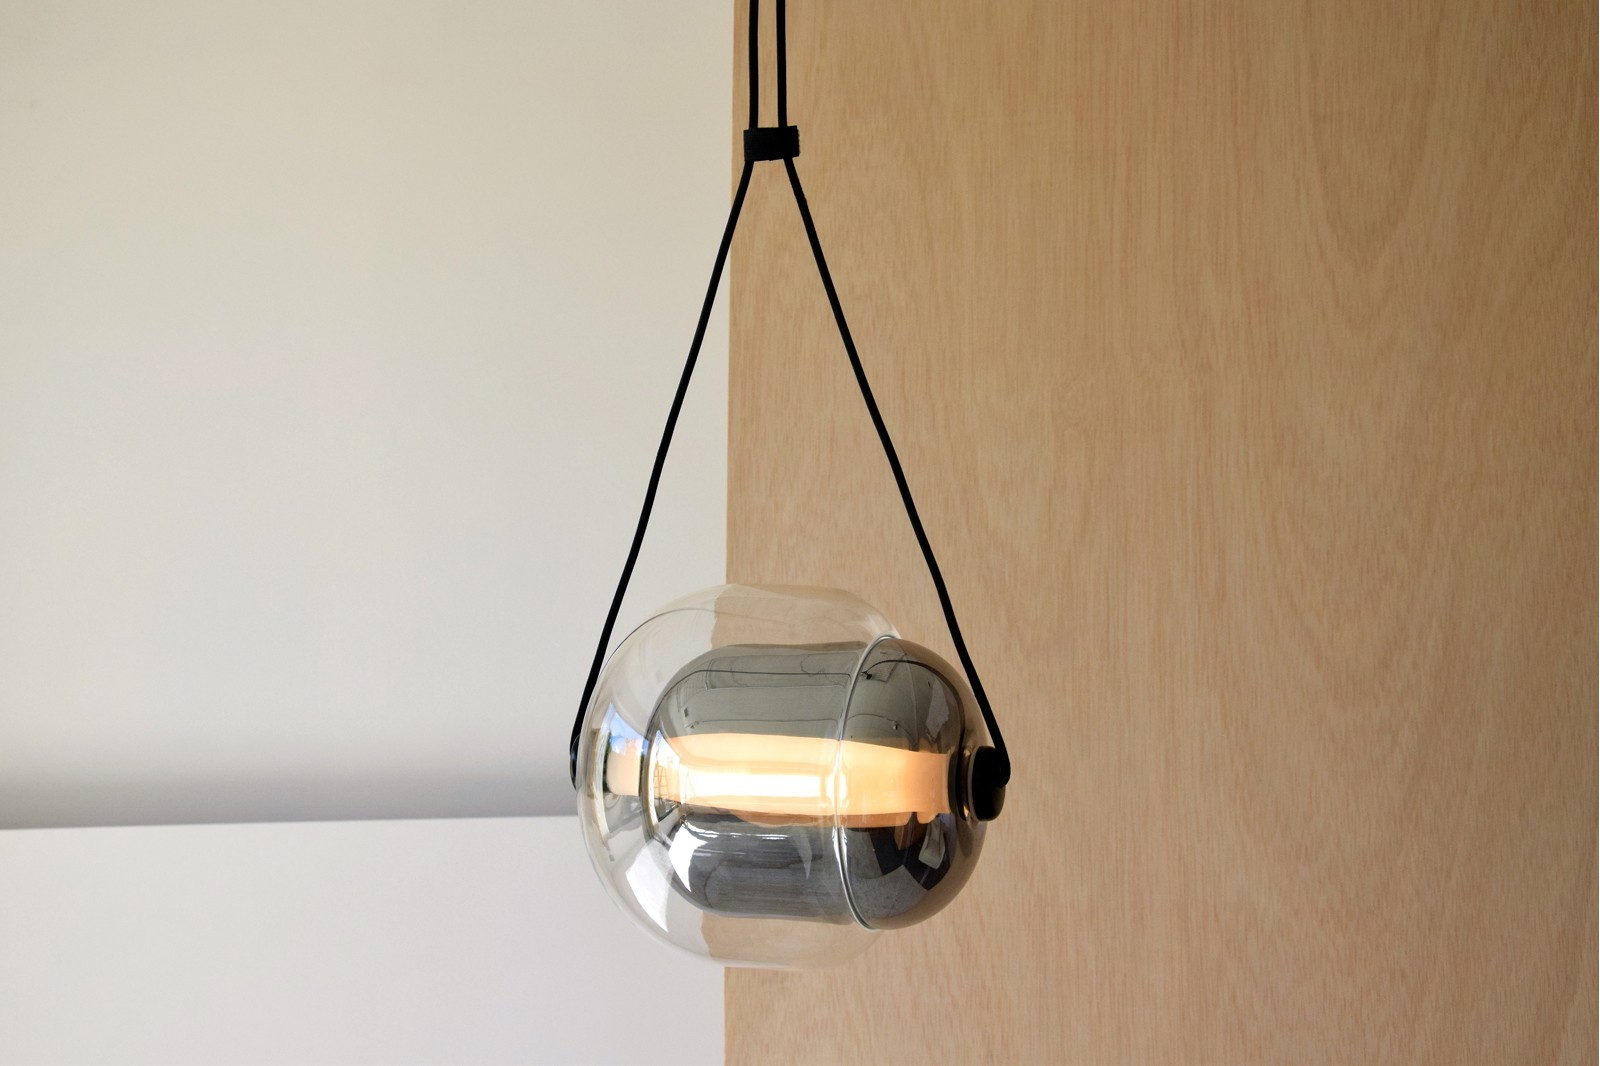 NASA PENDANT LAMP